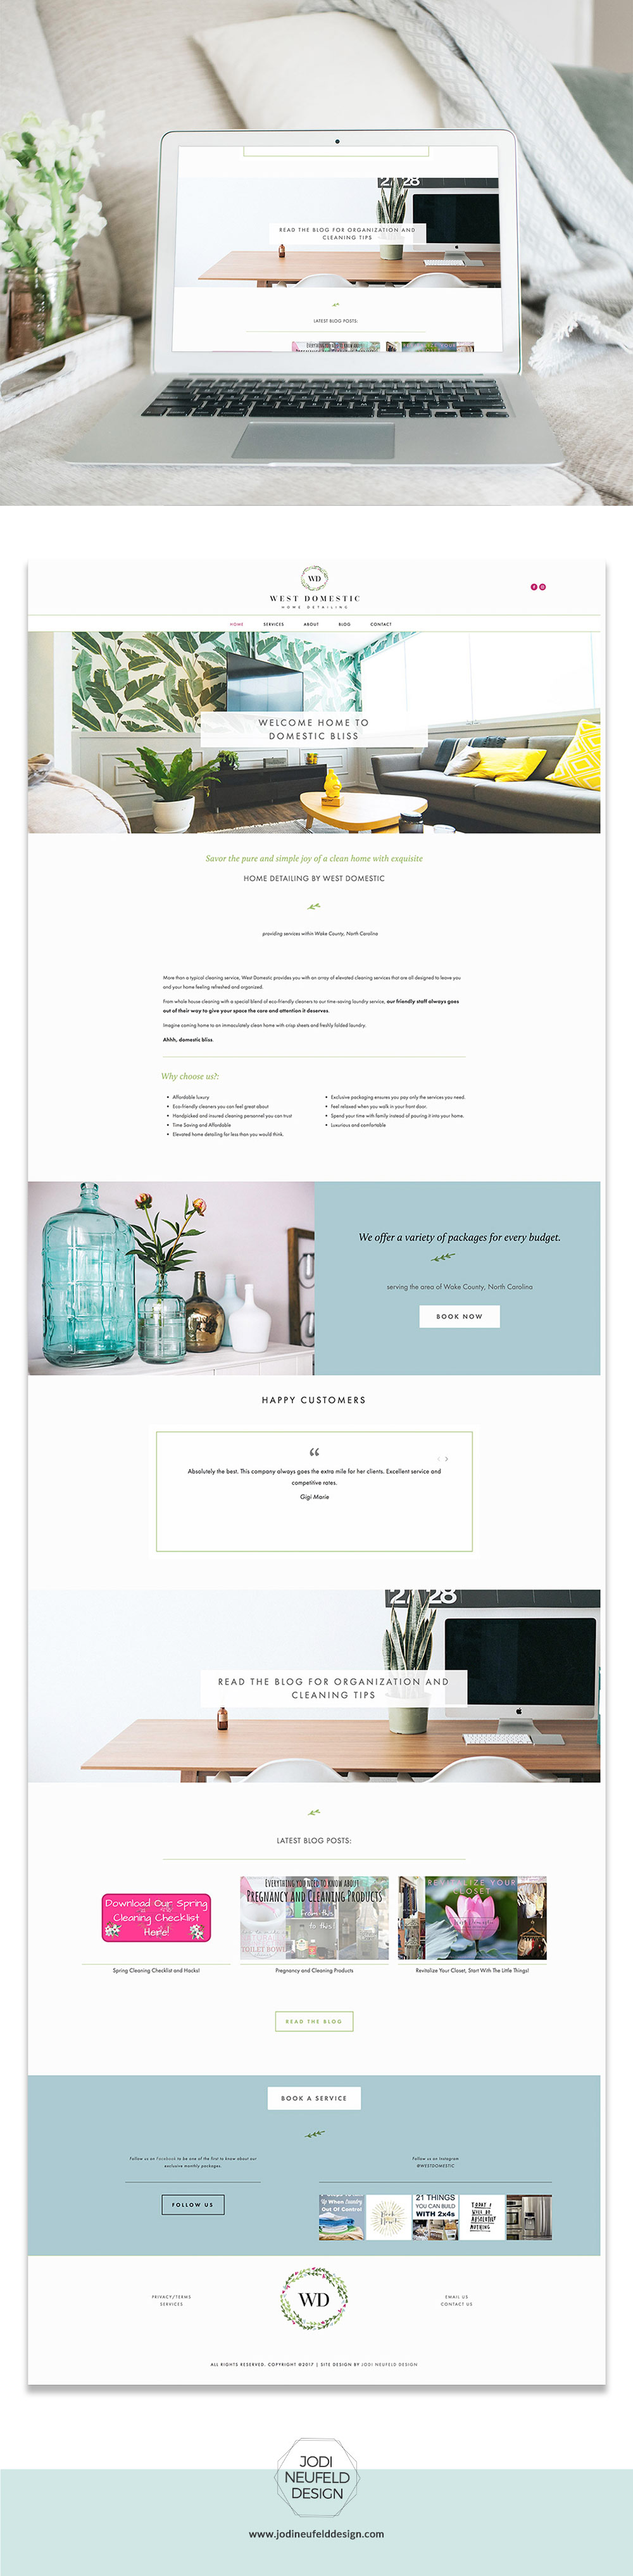 West Domestic Website design | Home page | Squarespace webdesign by Jodi Neufeld Design